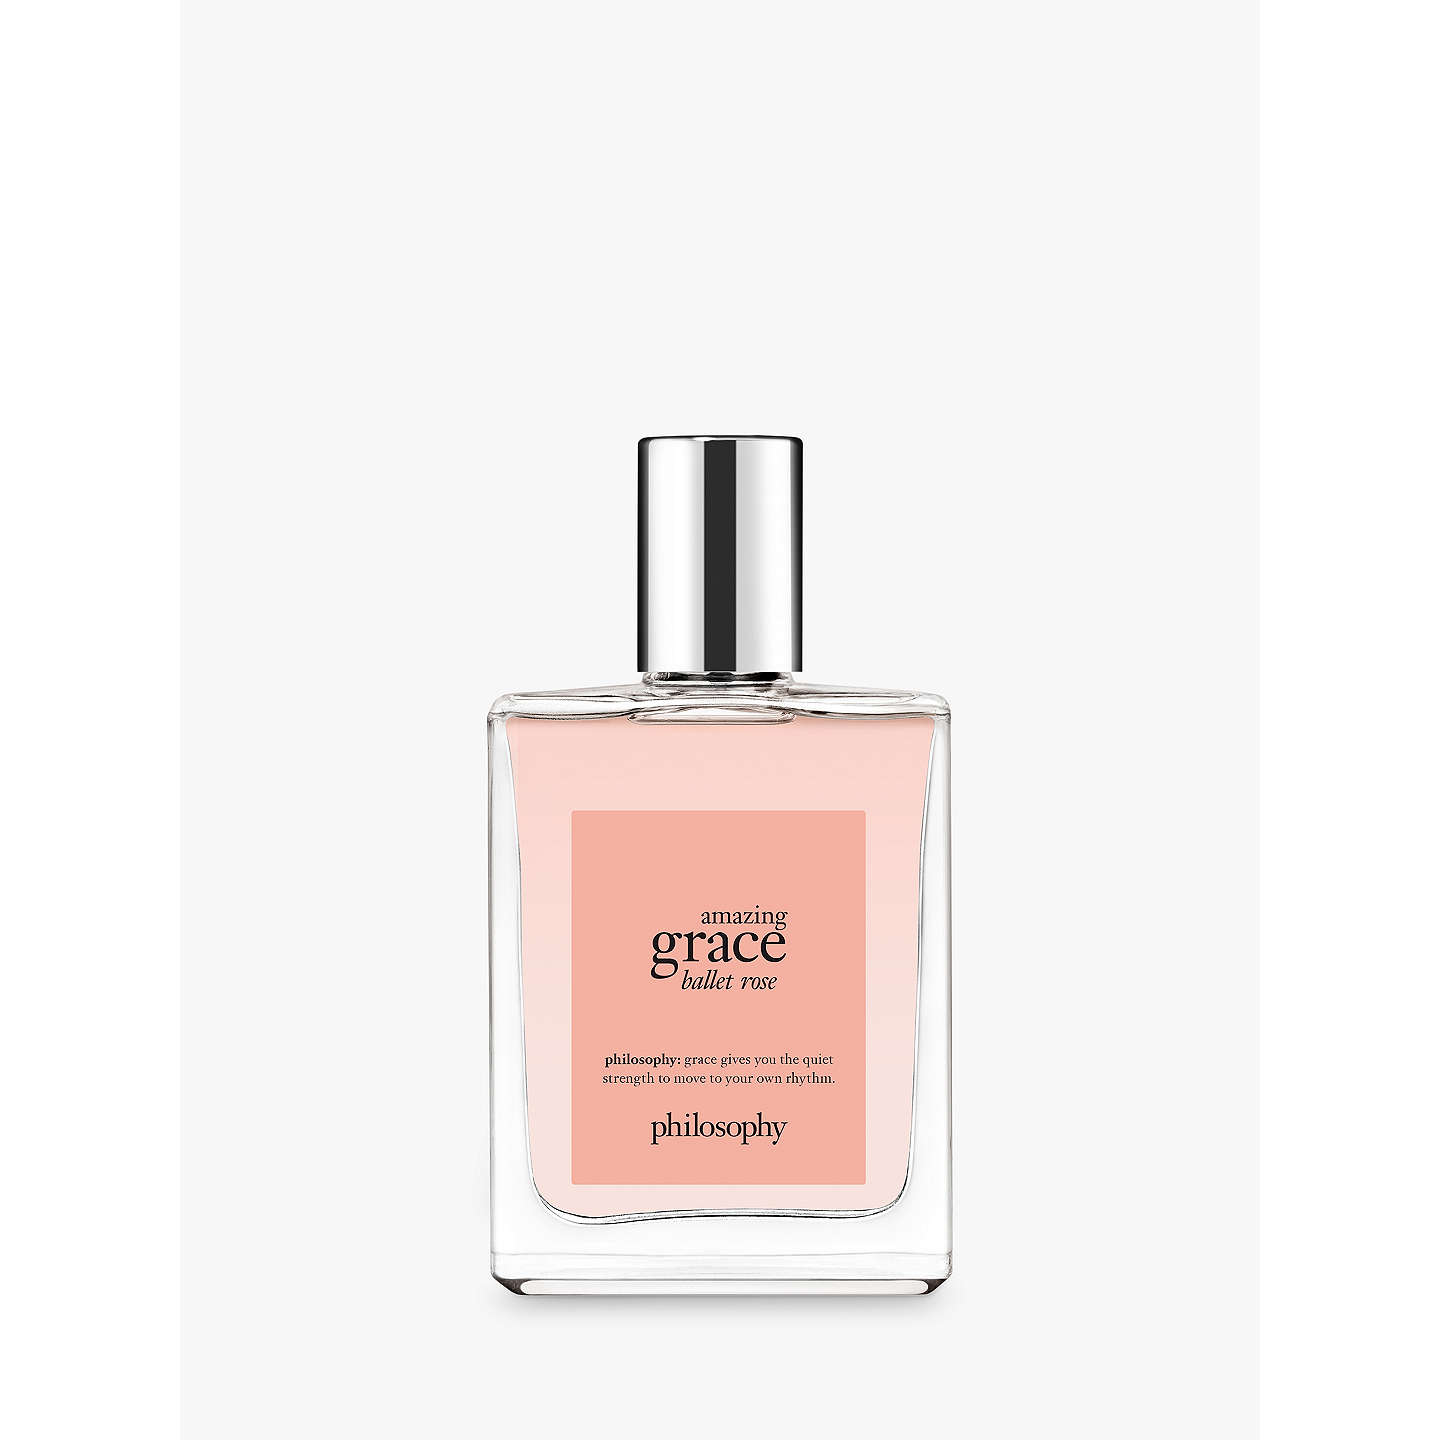 BuyPhilsophy Amazing Grace Ballet Rose Eau de Toilette, 60ml Online at johnlewis.com